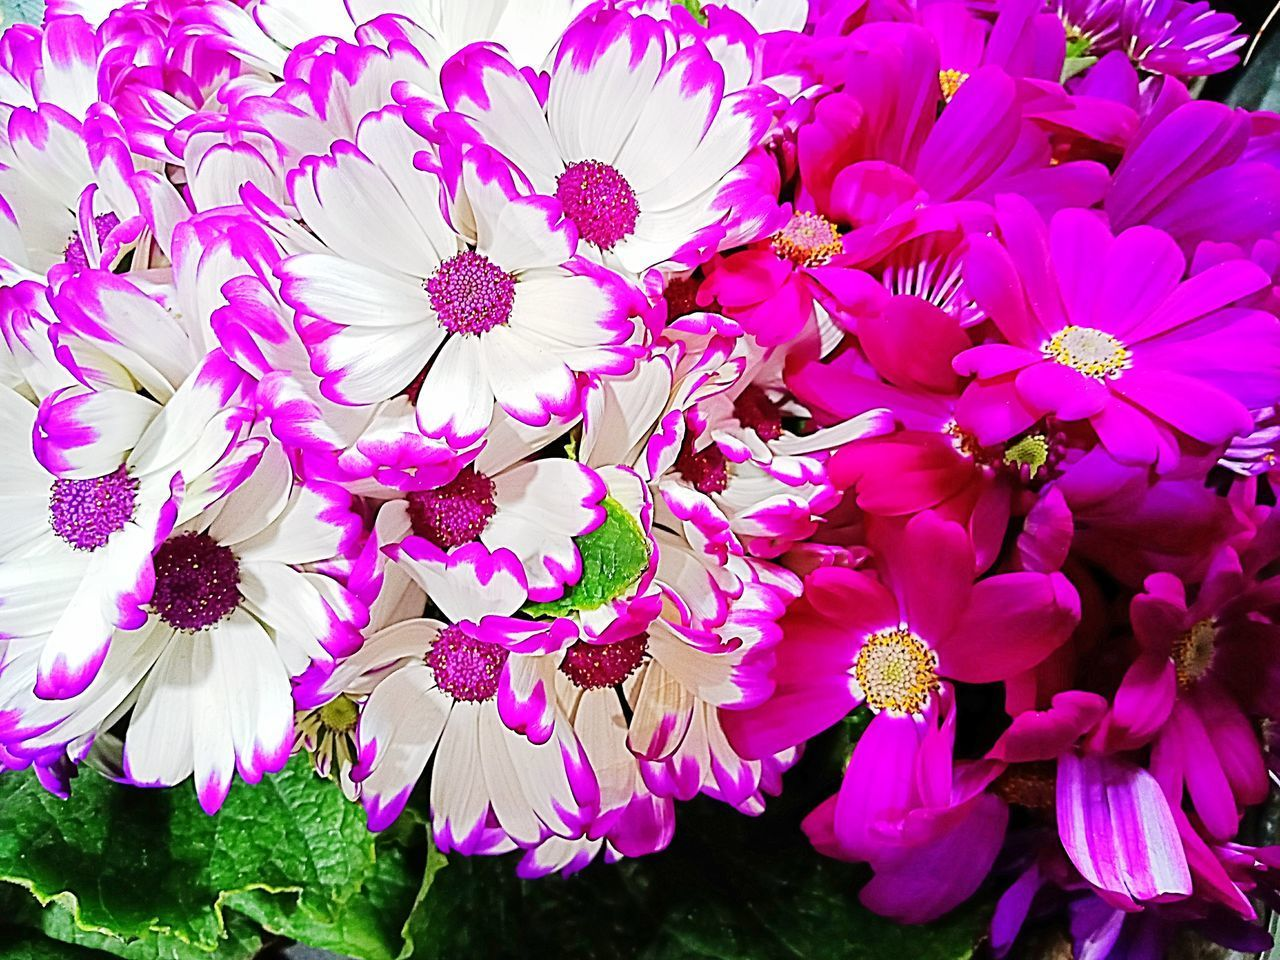 flower, flowering plant, petal, freshness, fragility, vulnerability, plant, beauty in nature, flower head, pink color, close-up, growth, inflorescence, no people, nature, day, outdoors, pollen, high angle view, botany, bunch of flowers, purple, flower arrangement